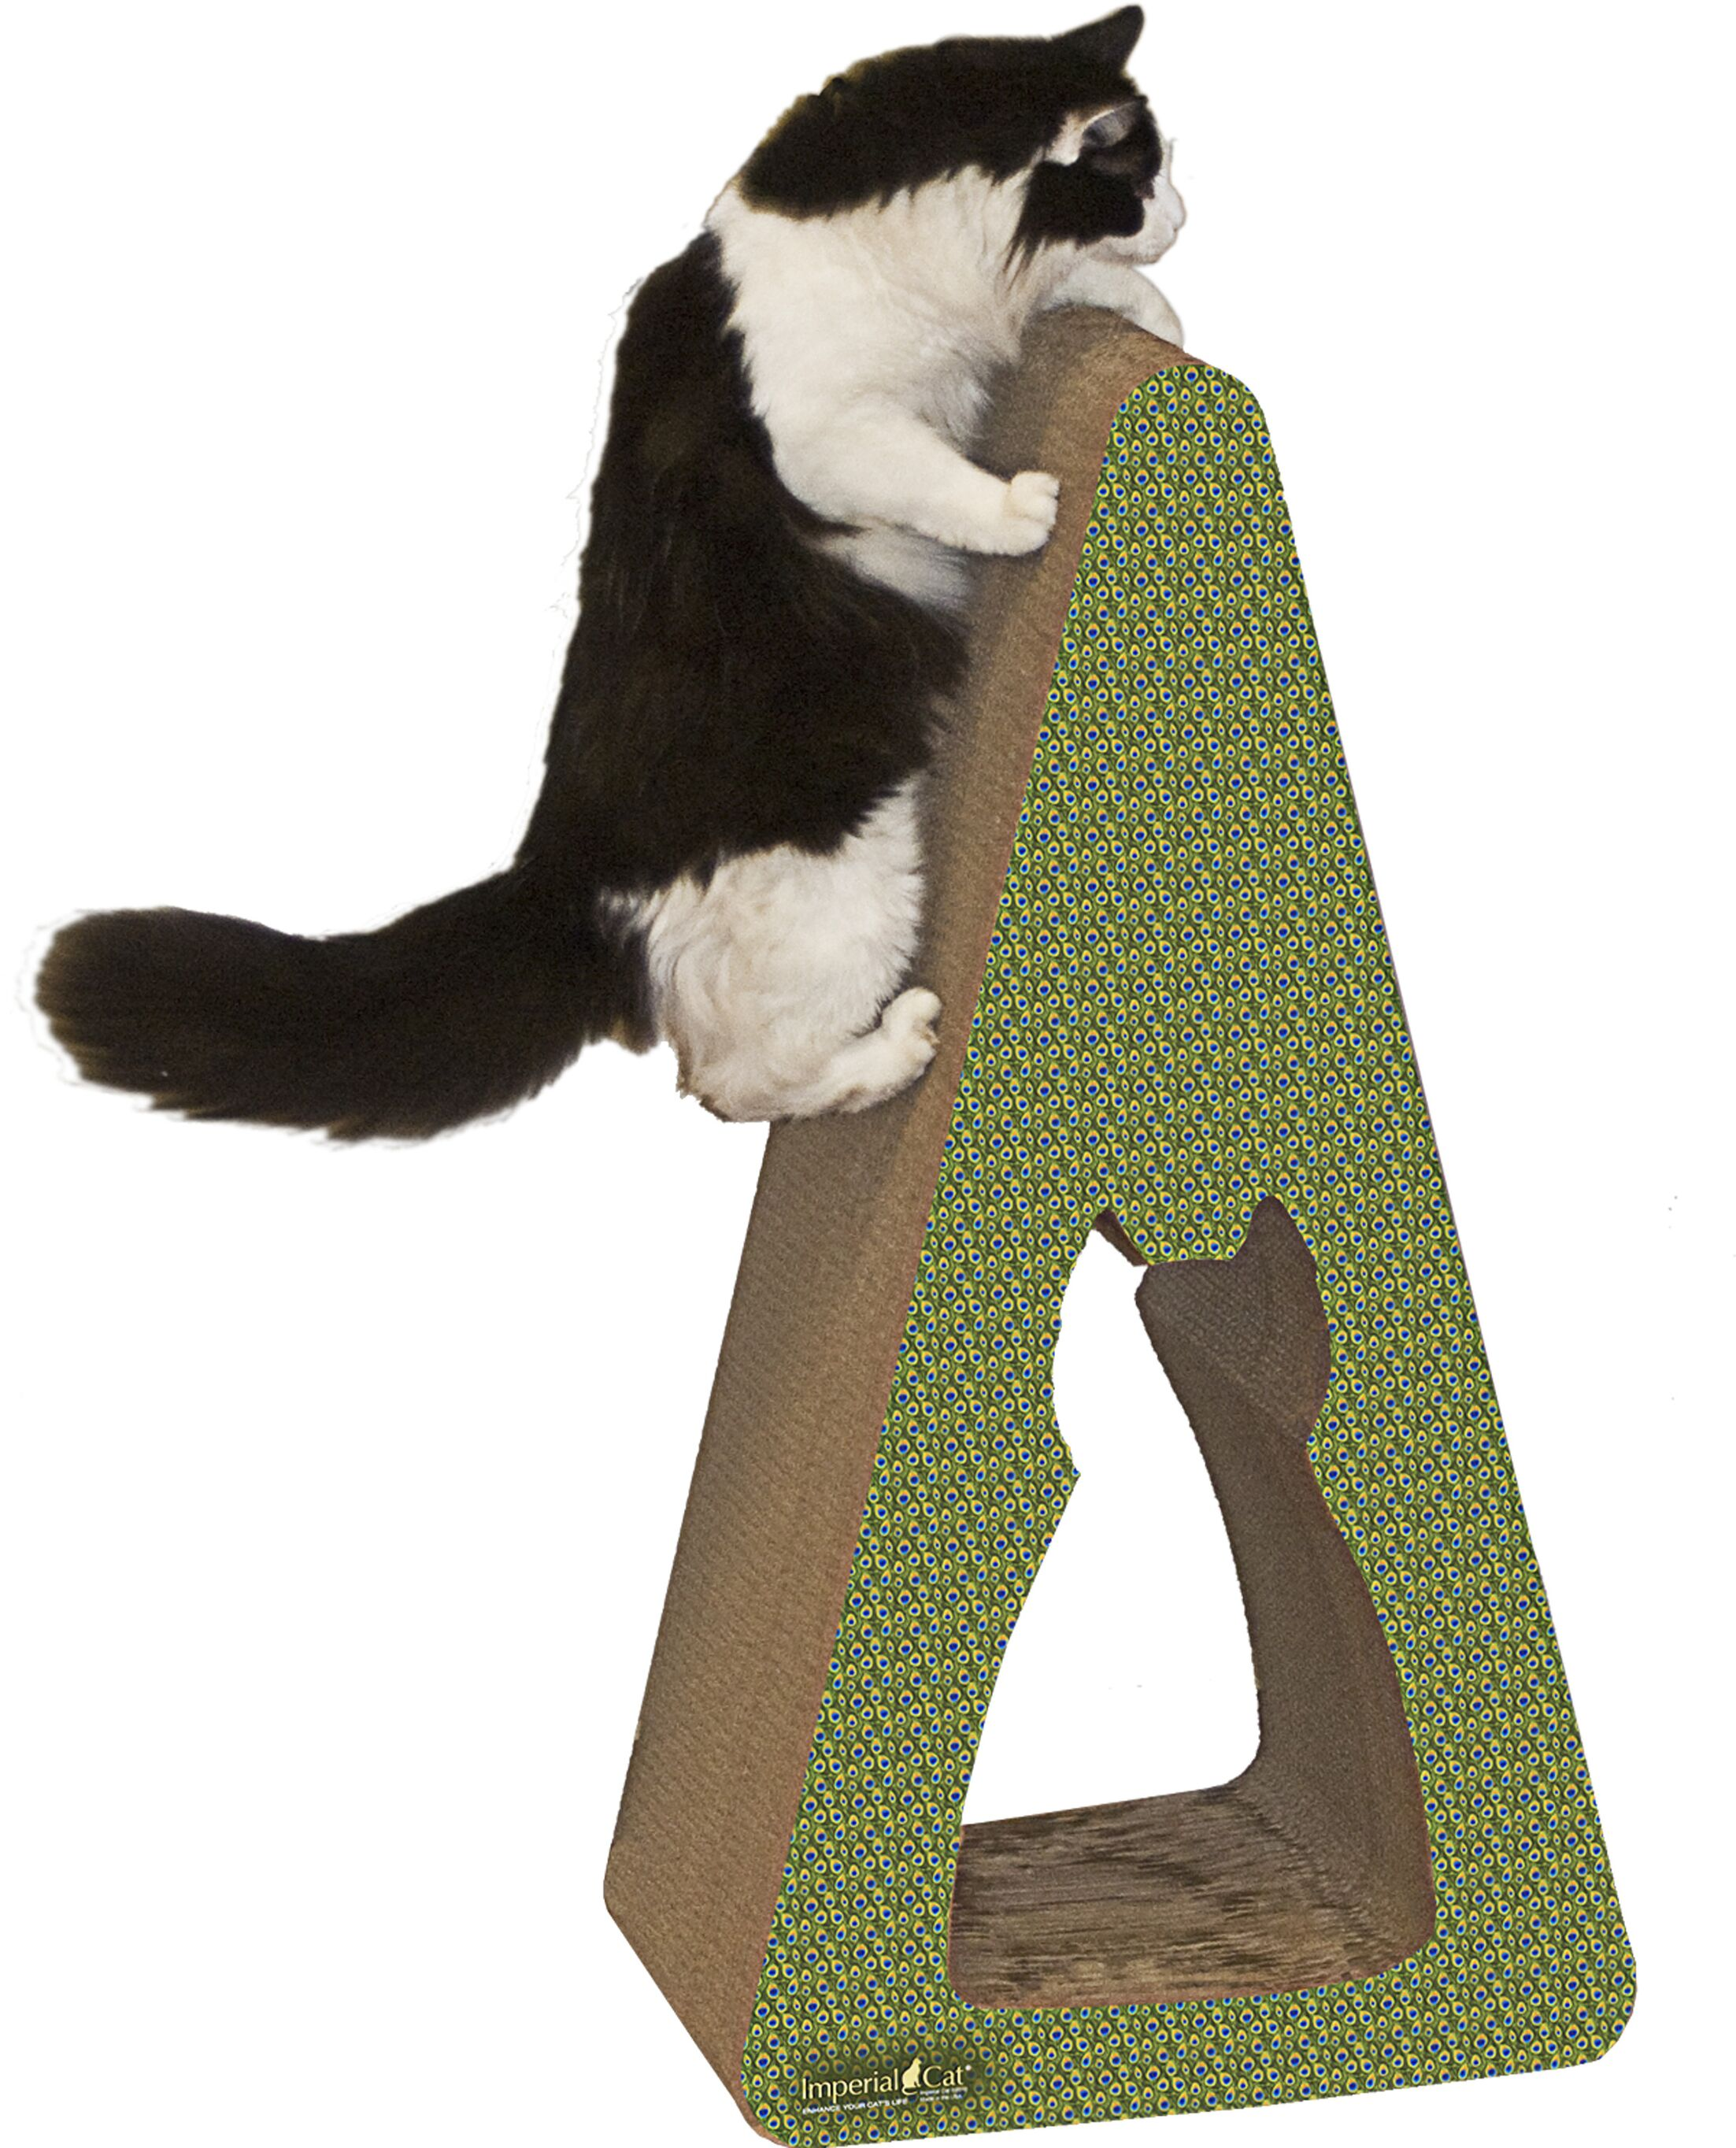 Scratch 'n Shapes Pyramid Recycled Paper Scratching Post Pattern: Peacock